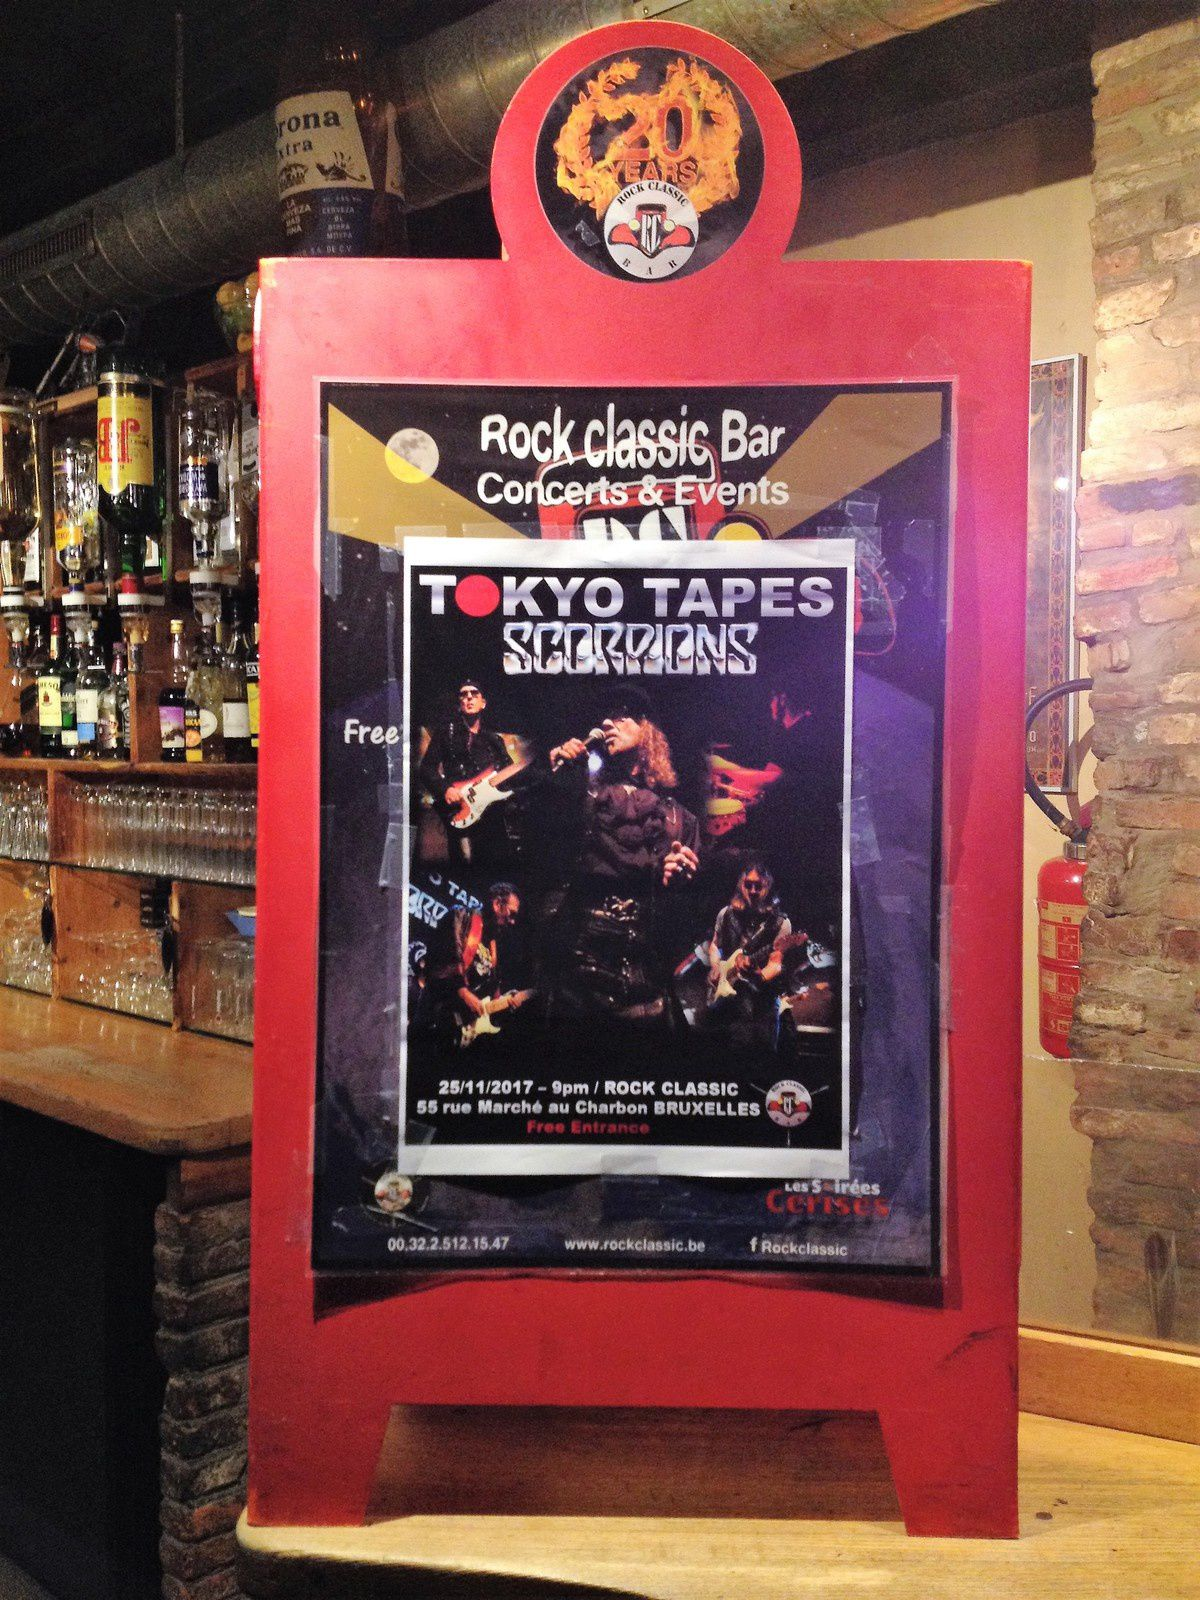 ▶ Photos / Videos - Tokyo Tapes (SCORPIONS tribute band) @ Rock Classic - 24/11/2017